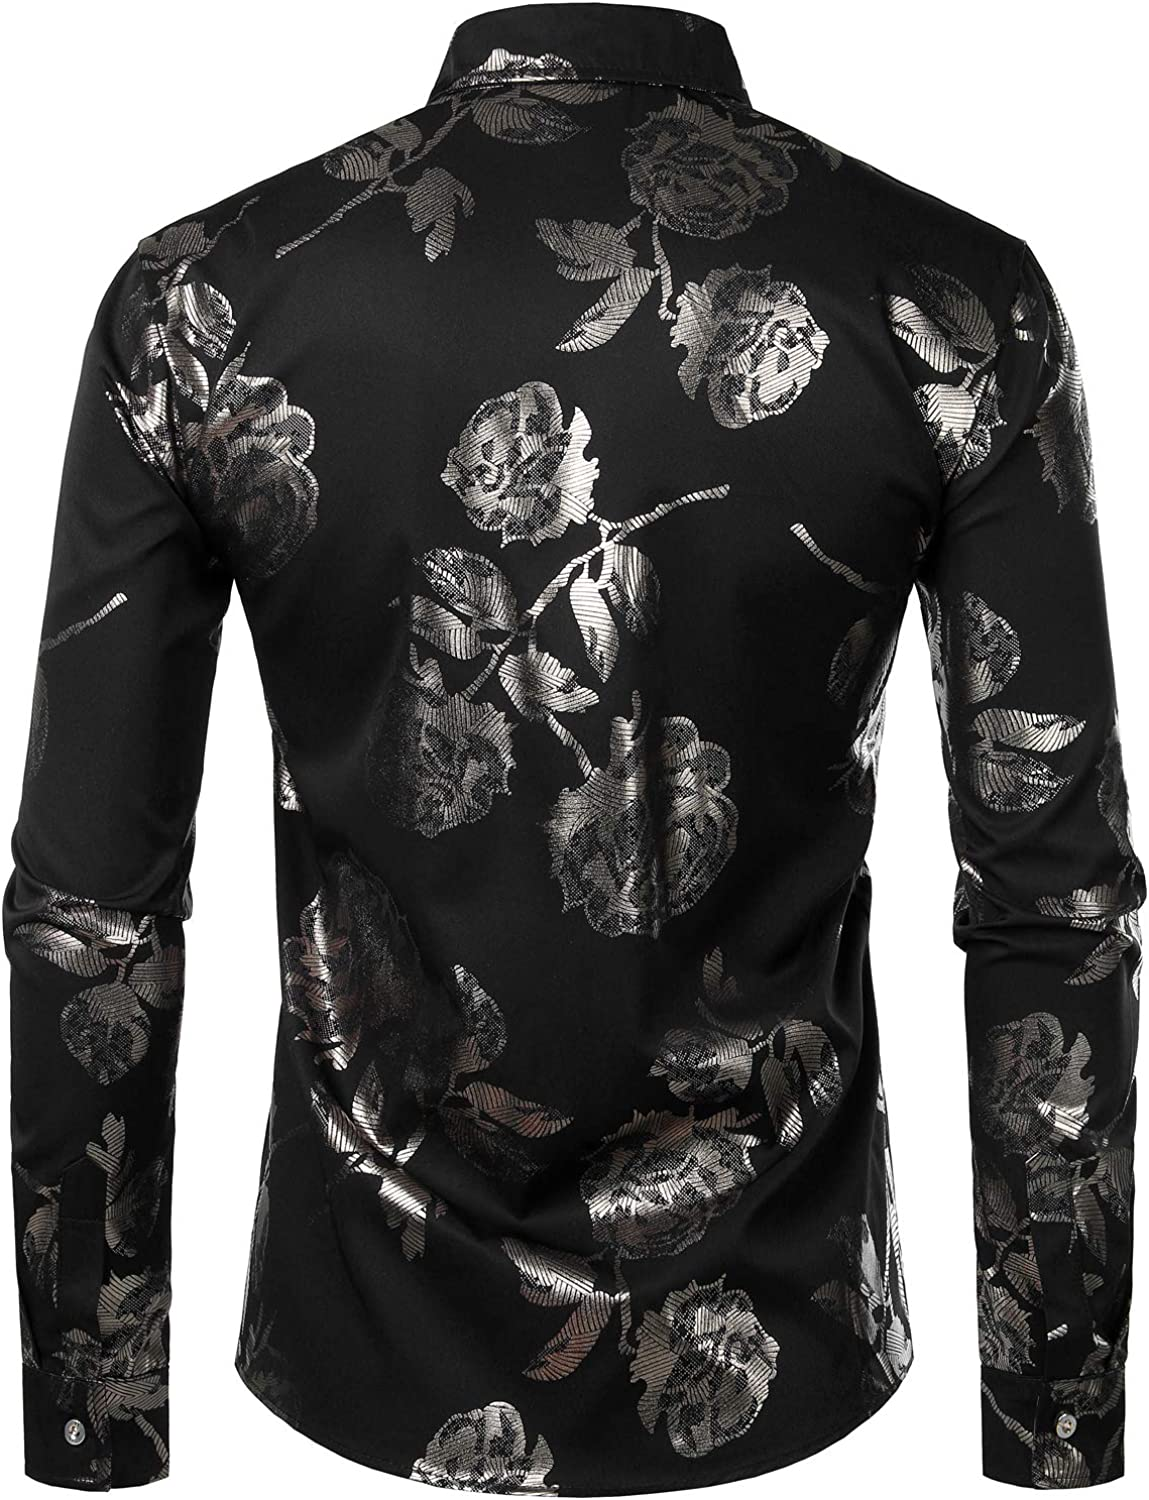 Beloved Mens Luxury Business Gold Shiny Flowered Printed Stylish Button Down Shirt